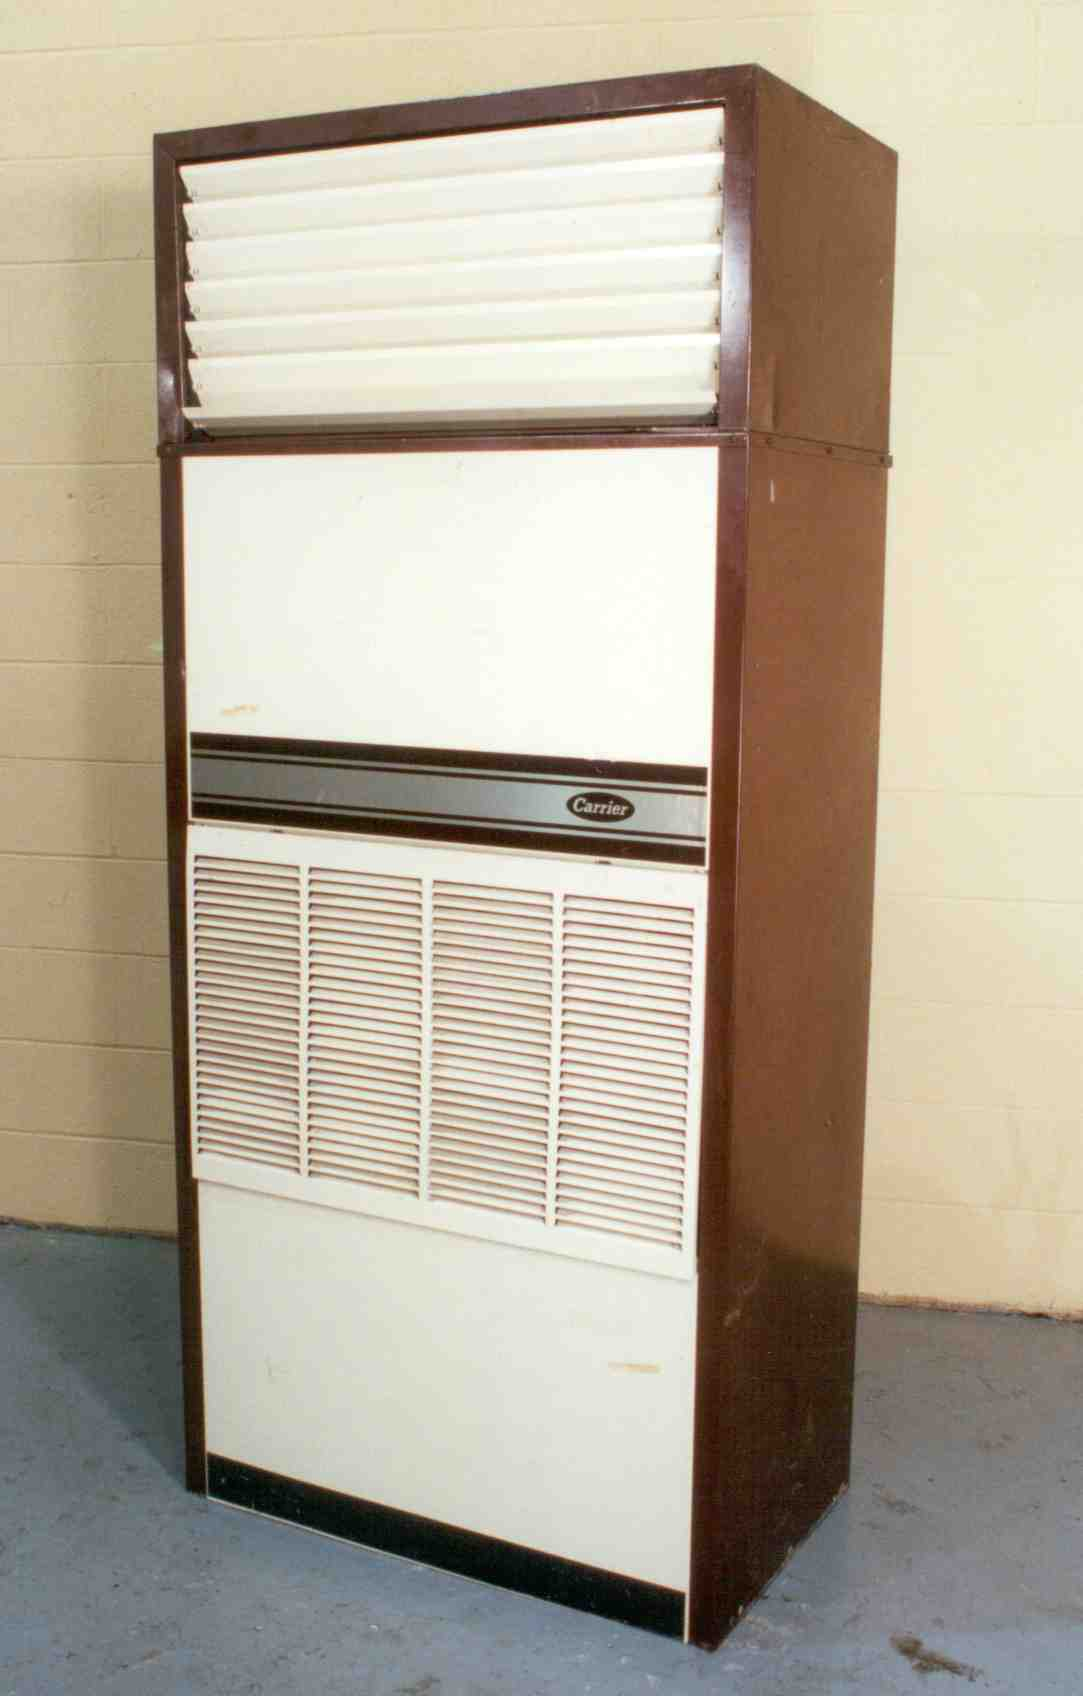 #6D4833 5 TON CARRIER PACKAGED AIR CONDITIONING/HEATING UNIT  Best 5773 Packaged Hvac Units photos with 1083x1696 px on helpvideos.info - Air Conditioners, Air Coolers and more